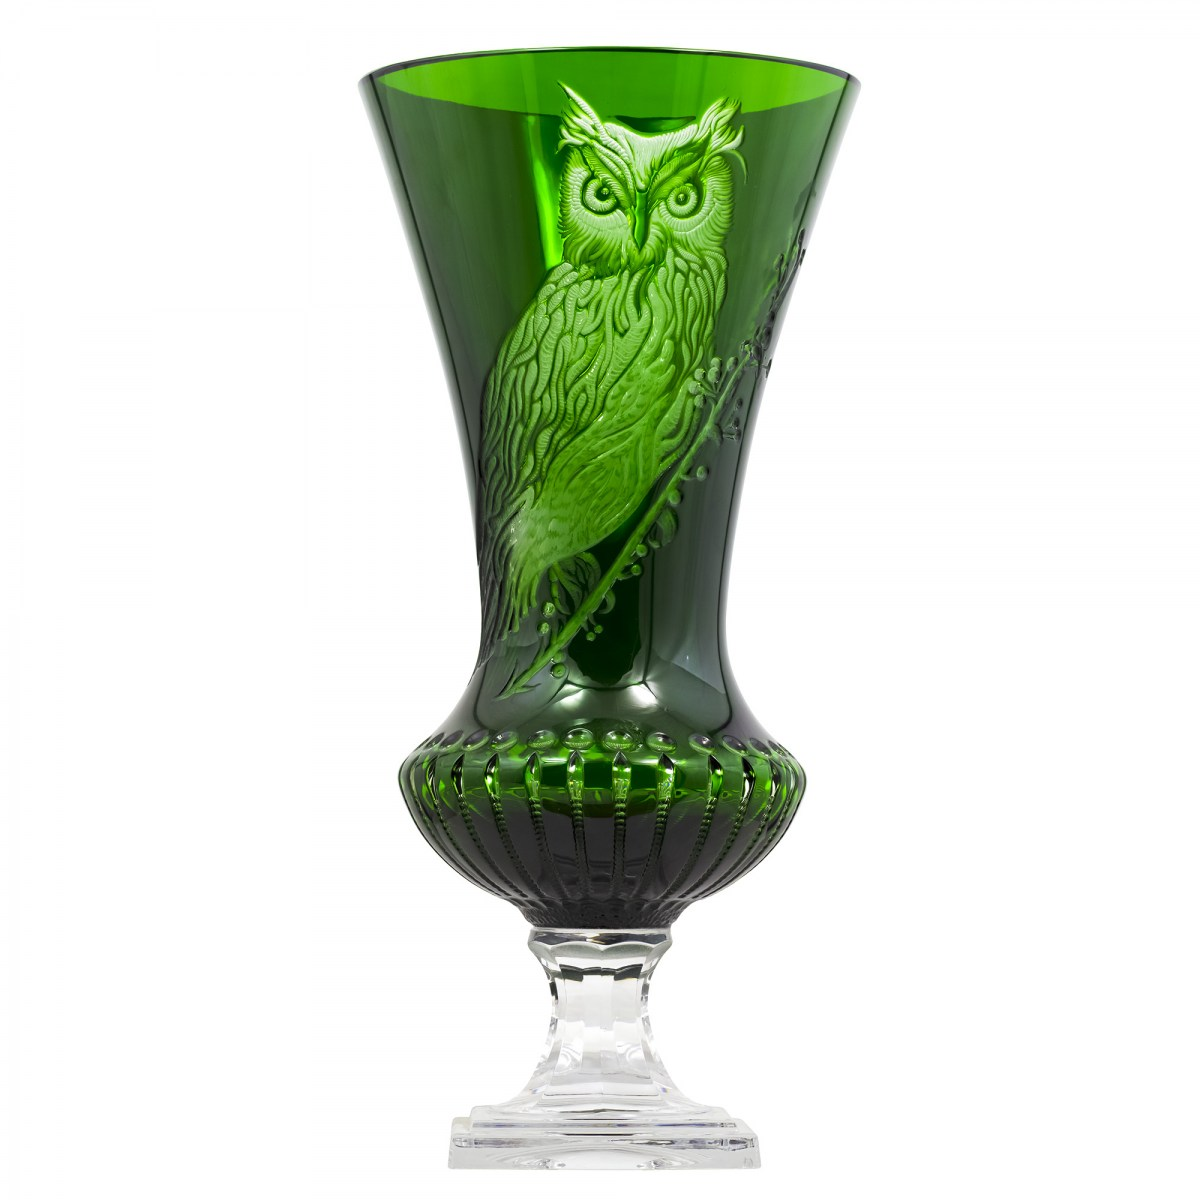 One of a Kind Green OWL Vase - $ 5257 / € 4600